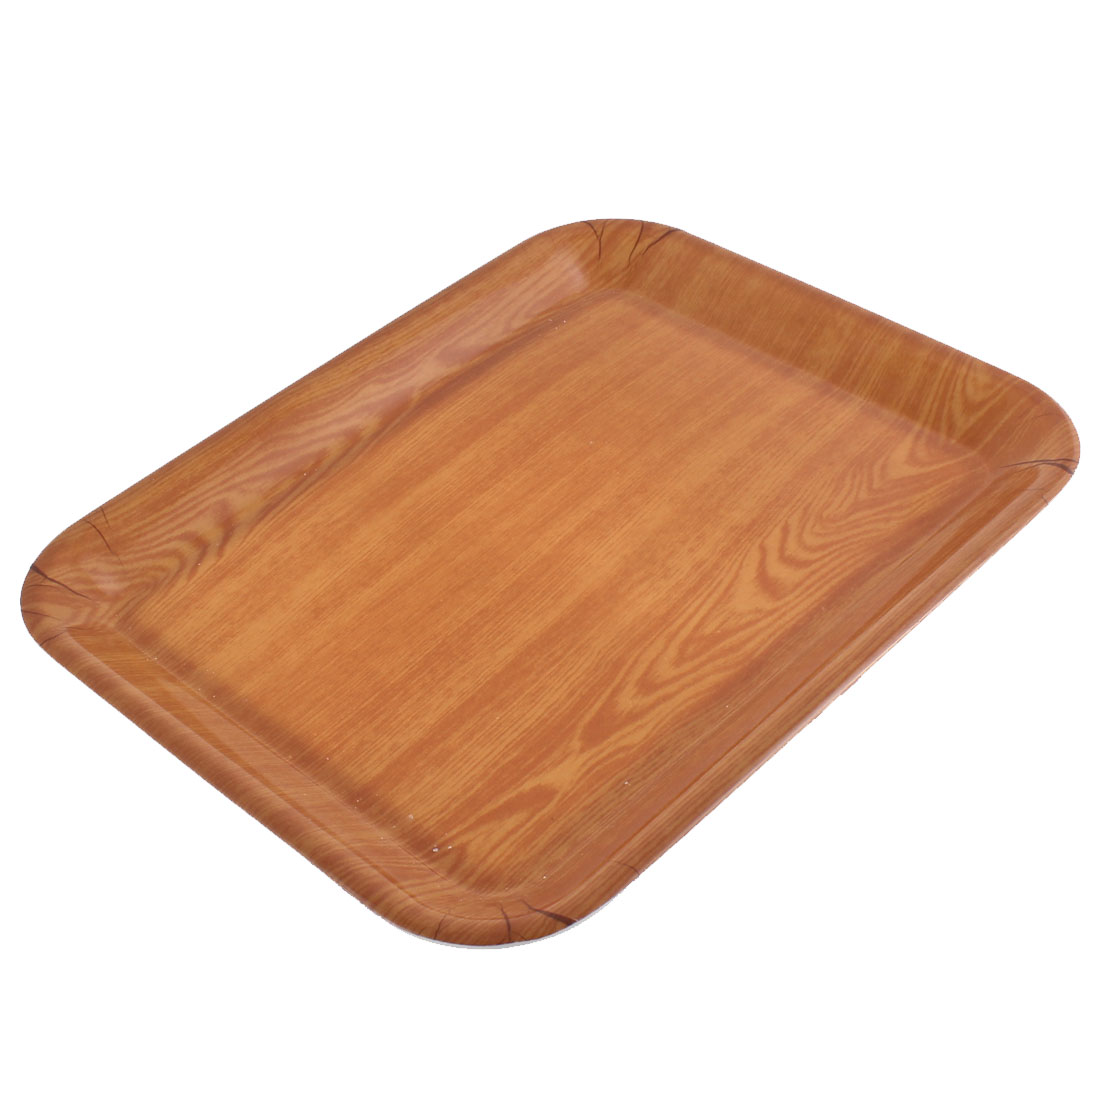 Hotel Restaurant Wood Grain Pattern Rectangle Shaped Food Cake Serving Tray